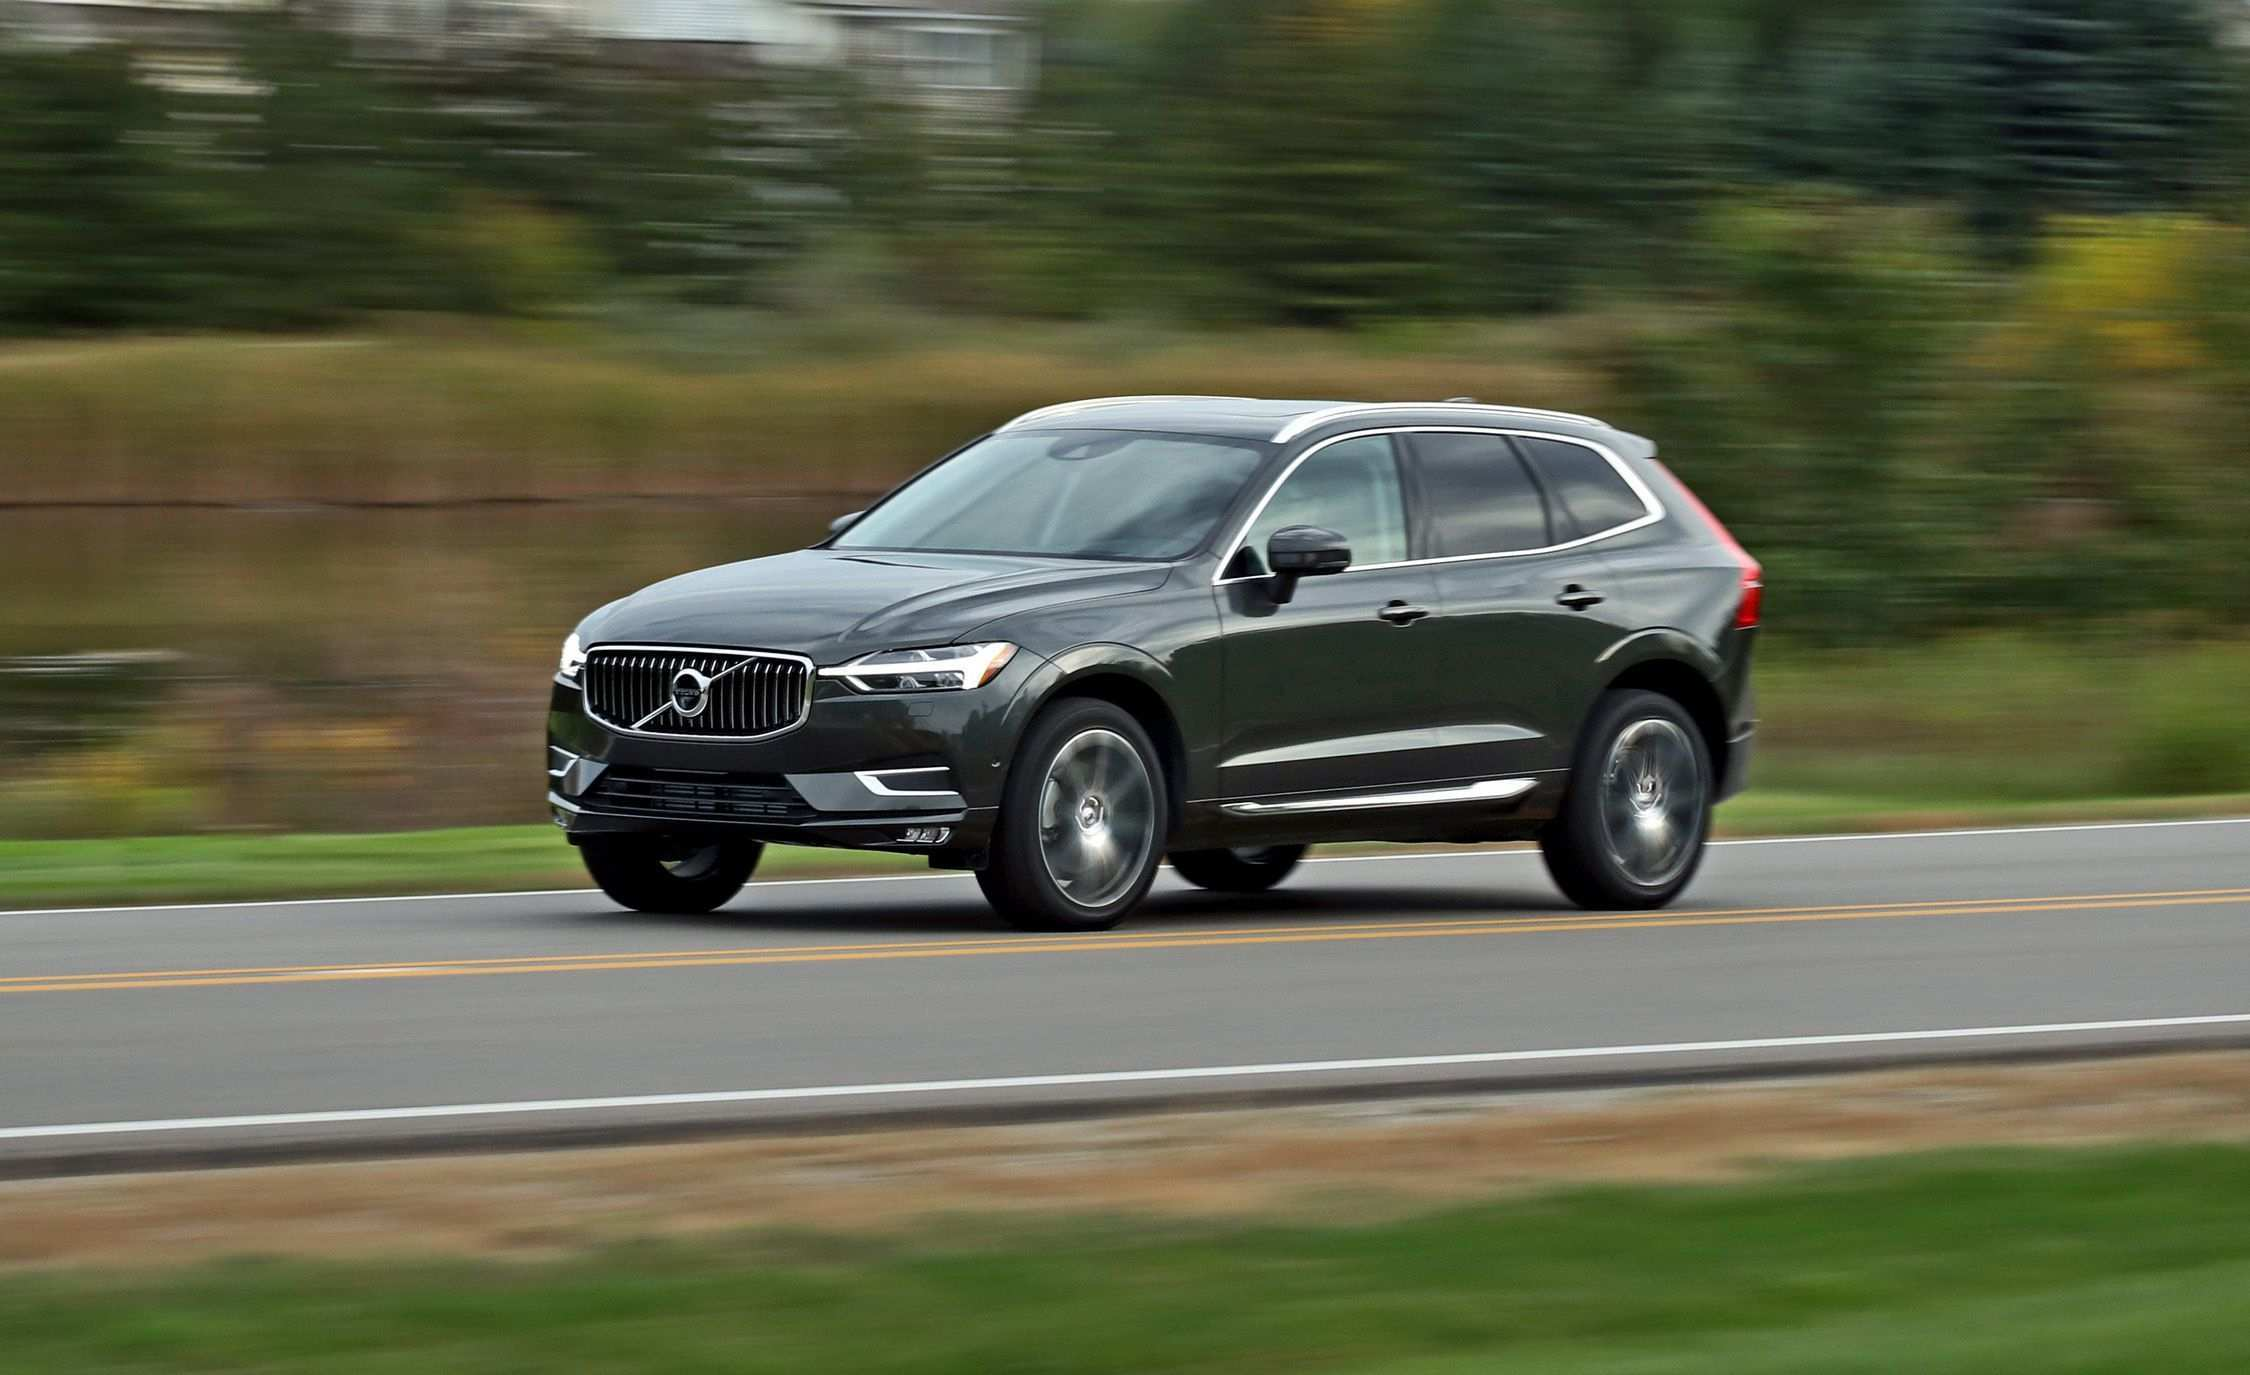 26 New Best Volvo 2019 Xc60 Review Exterior Wallpaper for Best Volvo 2019 Xc60 Review Exterior